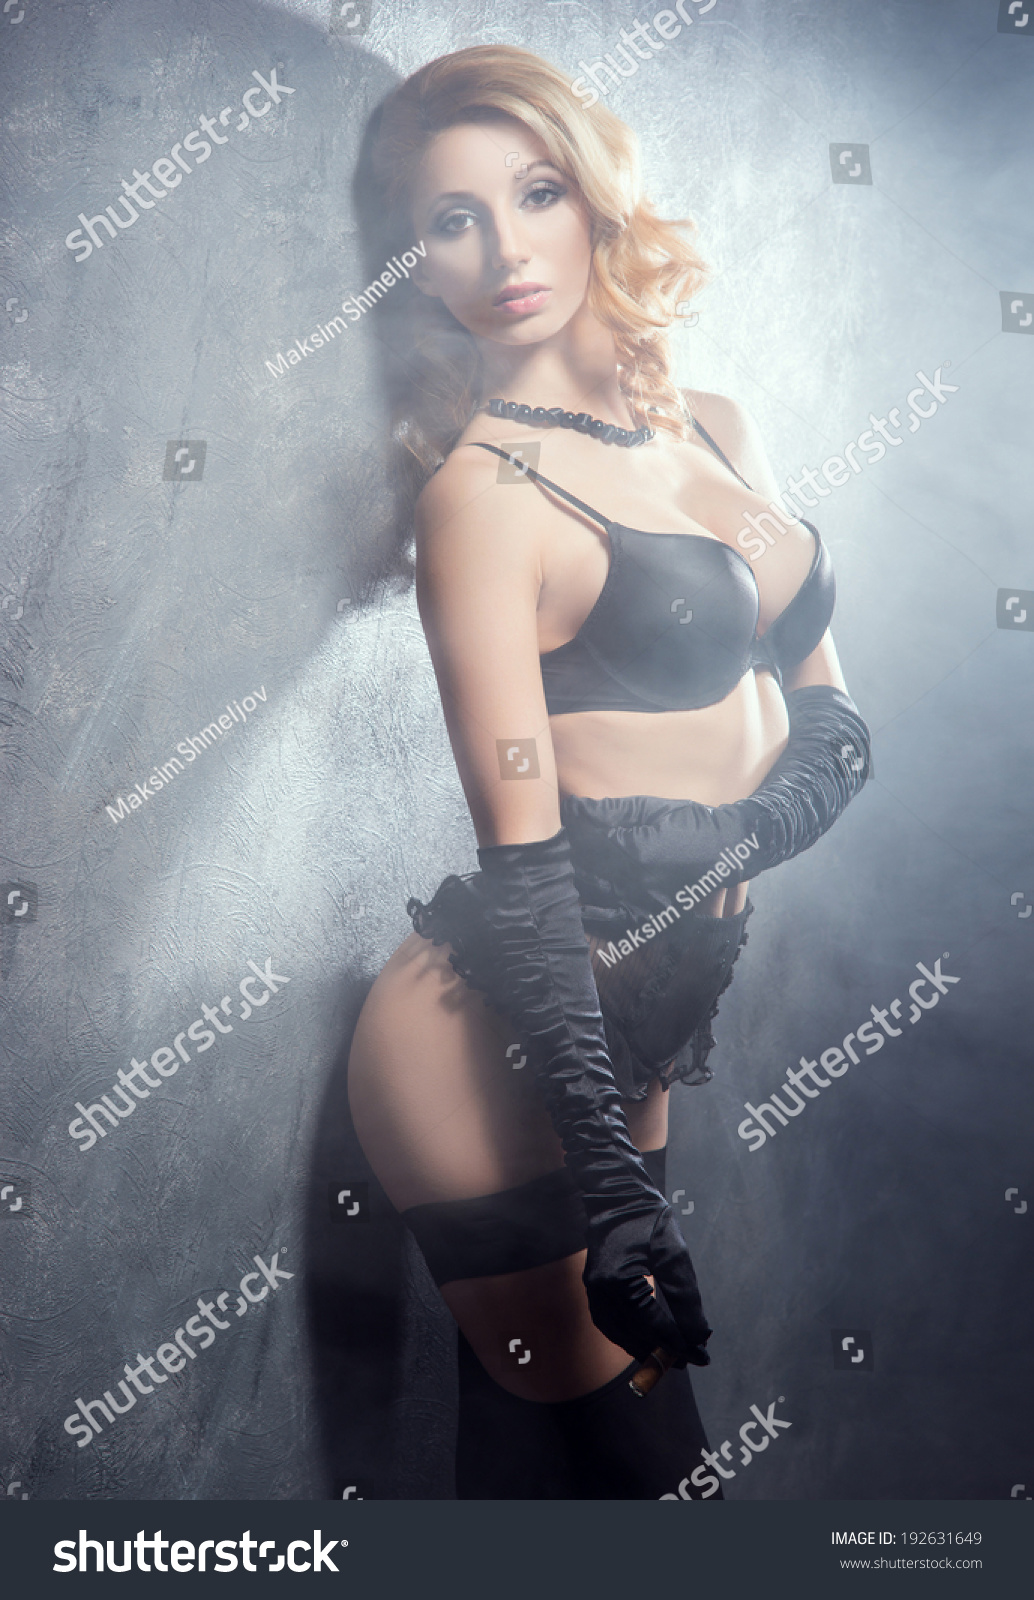 50c14c508 Young and beautiful cabaret dancer in sexy vintage lingerie smoking cigar  over retro background